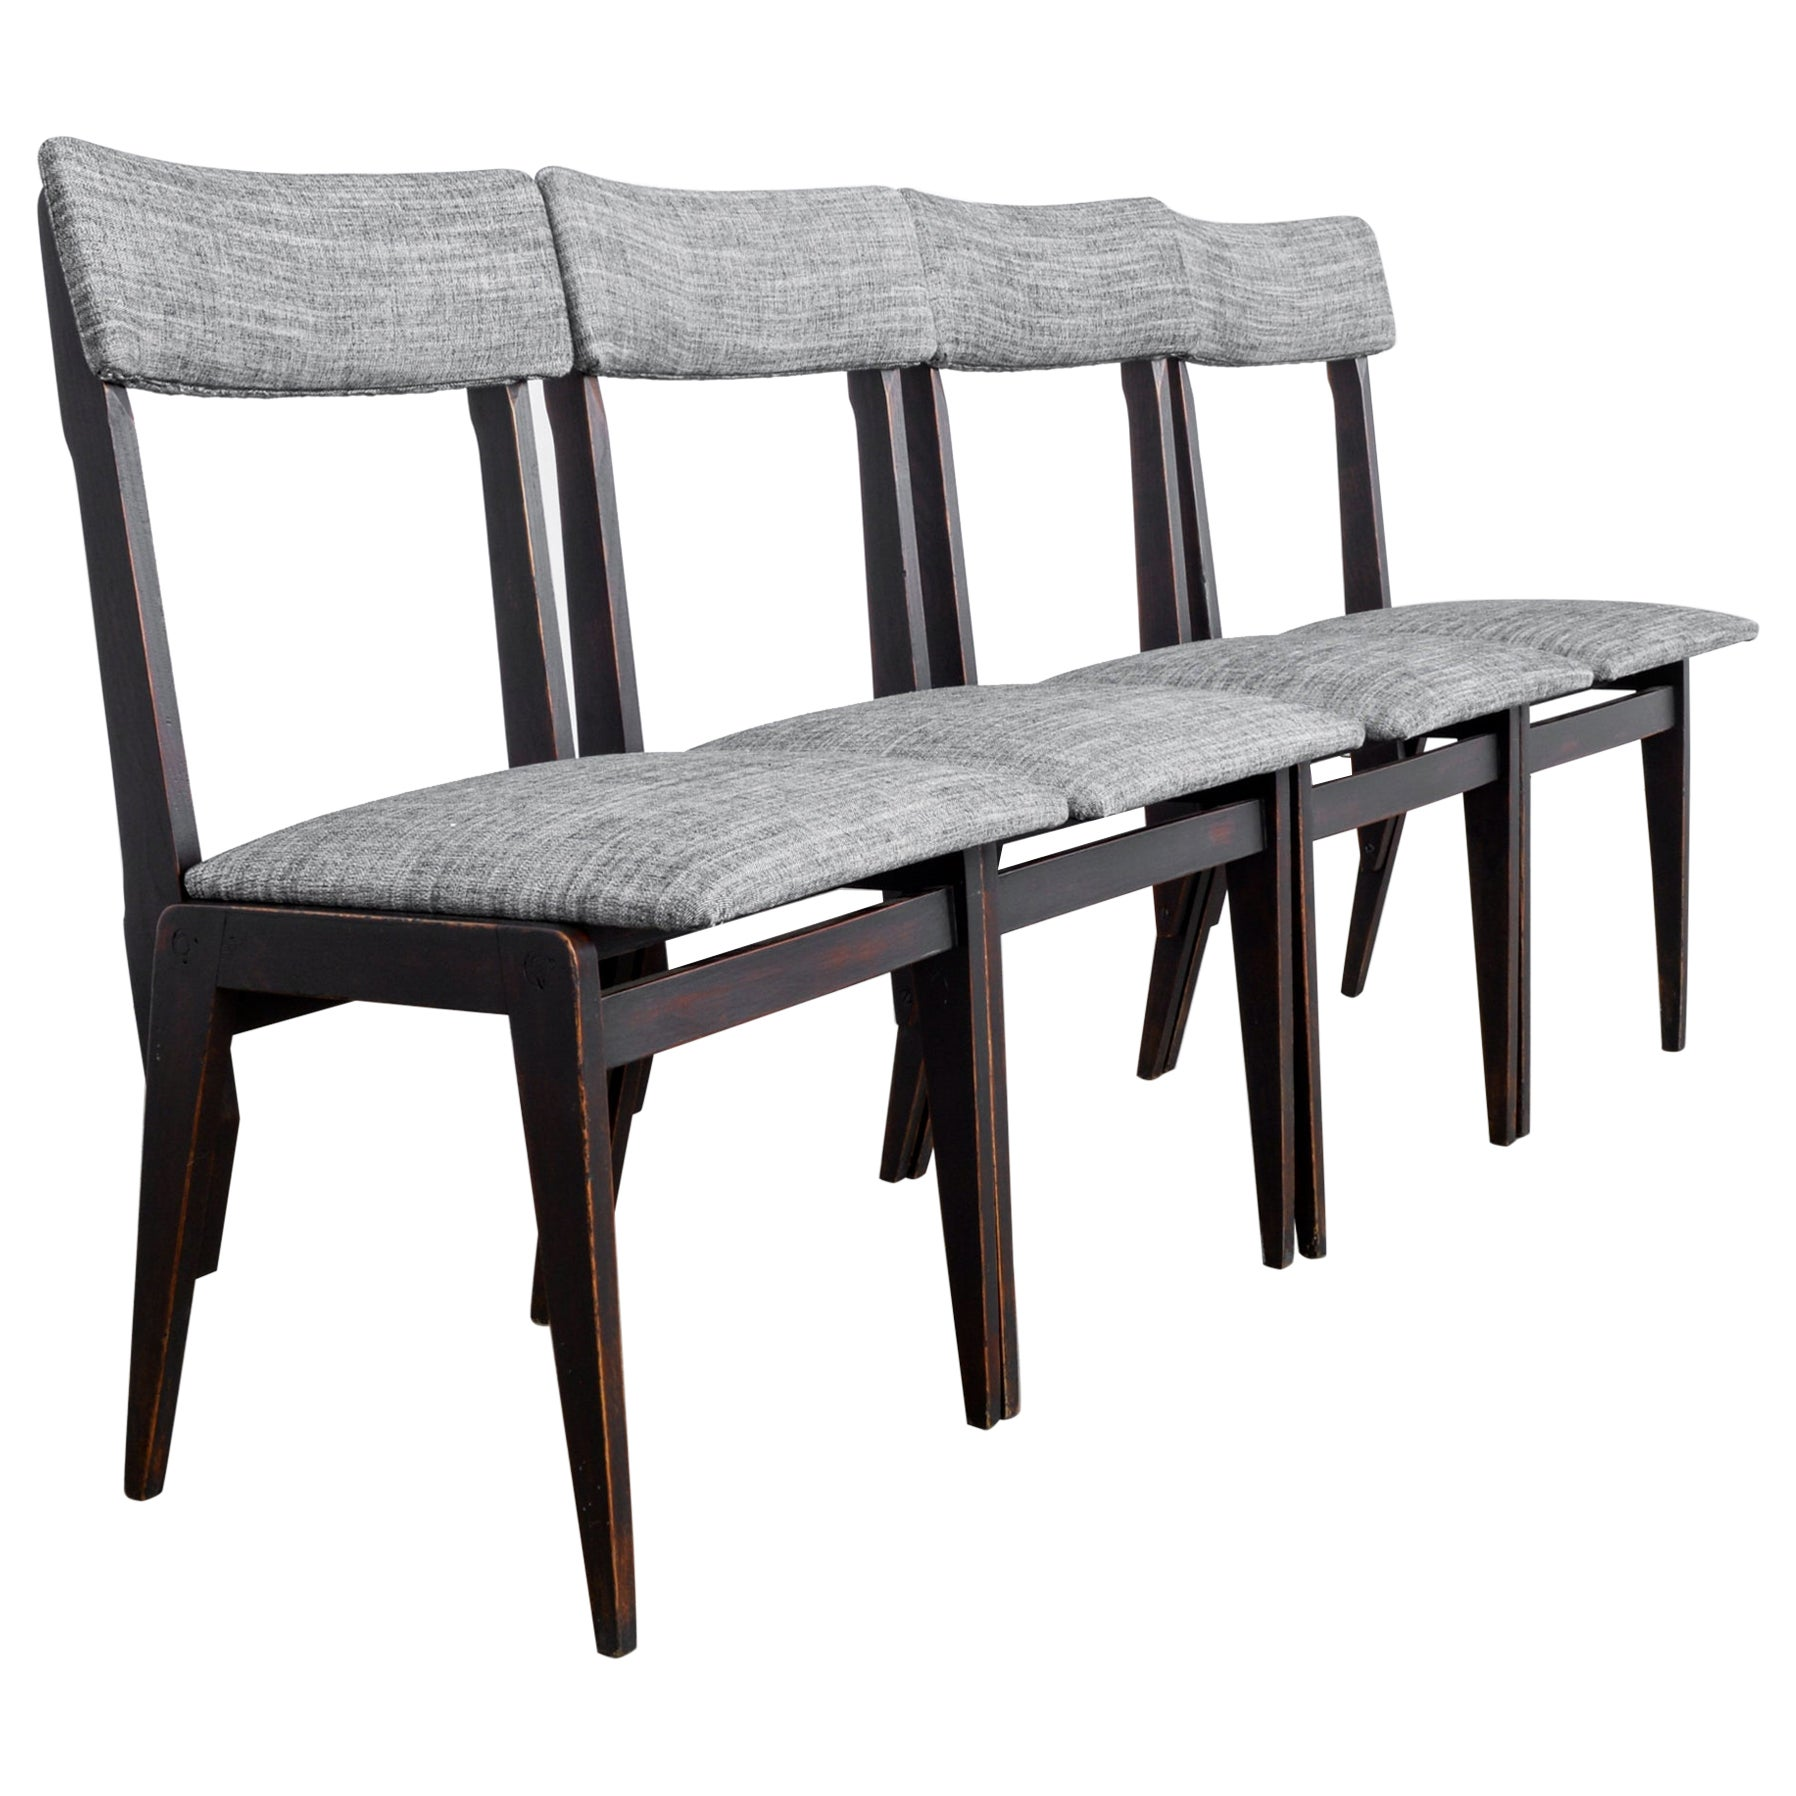 1950s Belgian Upholstered Dining Chairs, Set of Four